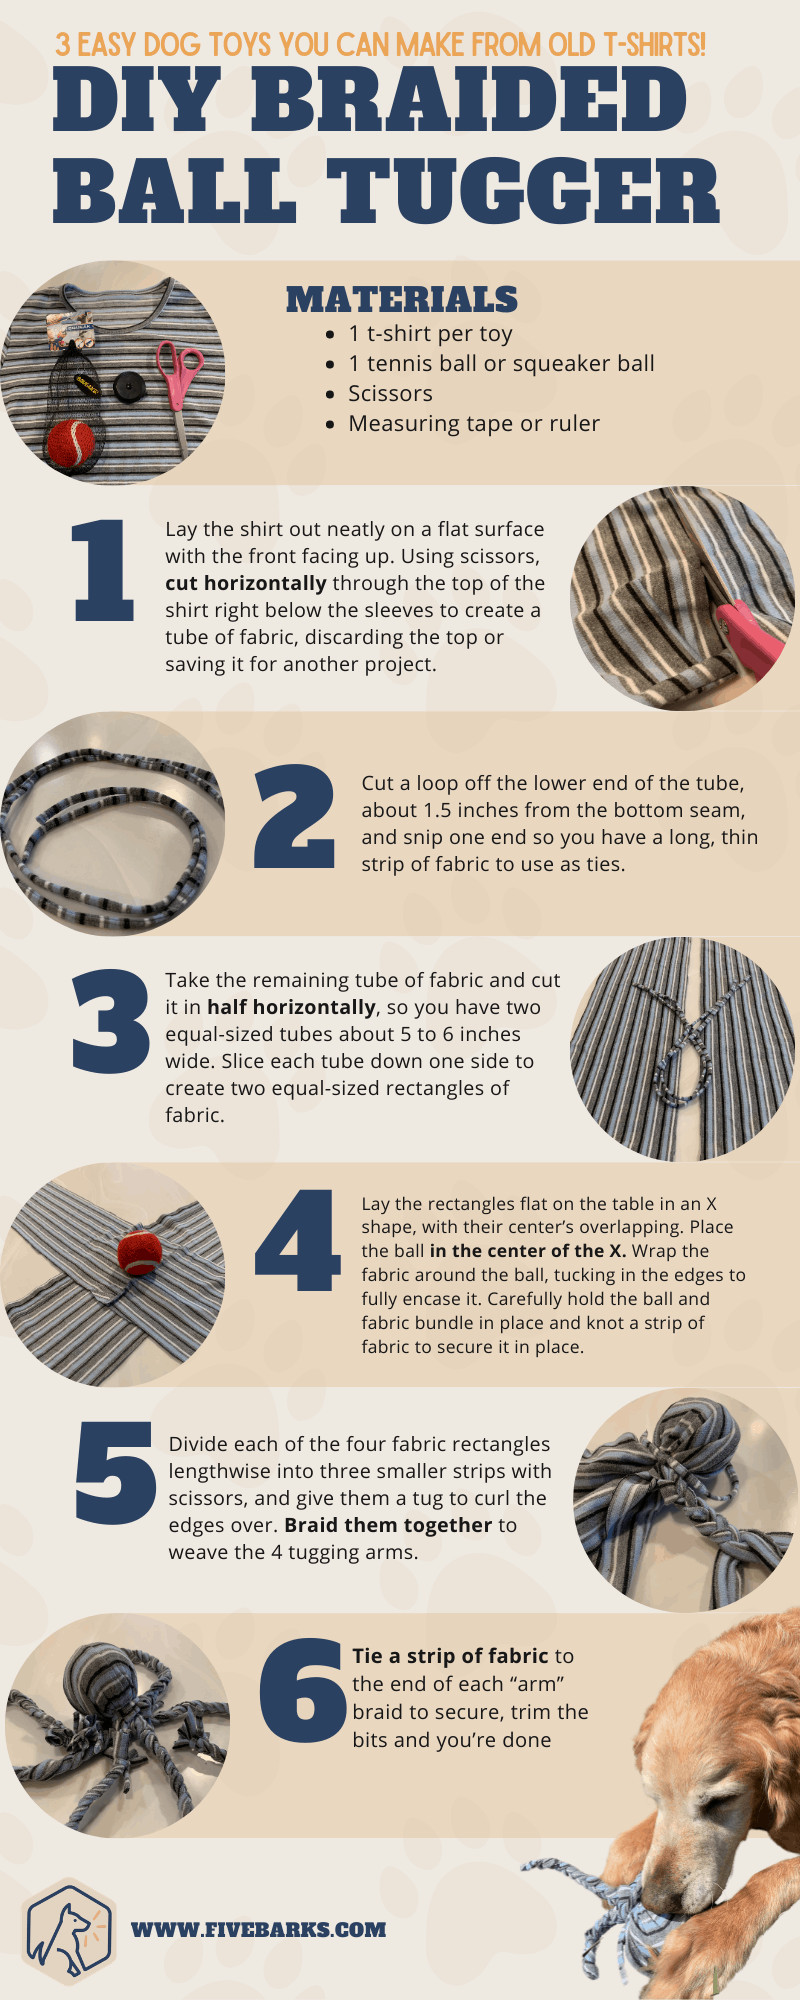 3 Easy Dog Toys You Can Make from Old T-Shirts - infographics